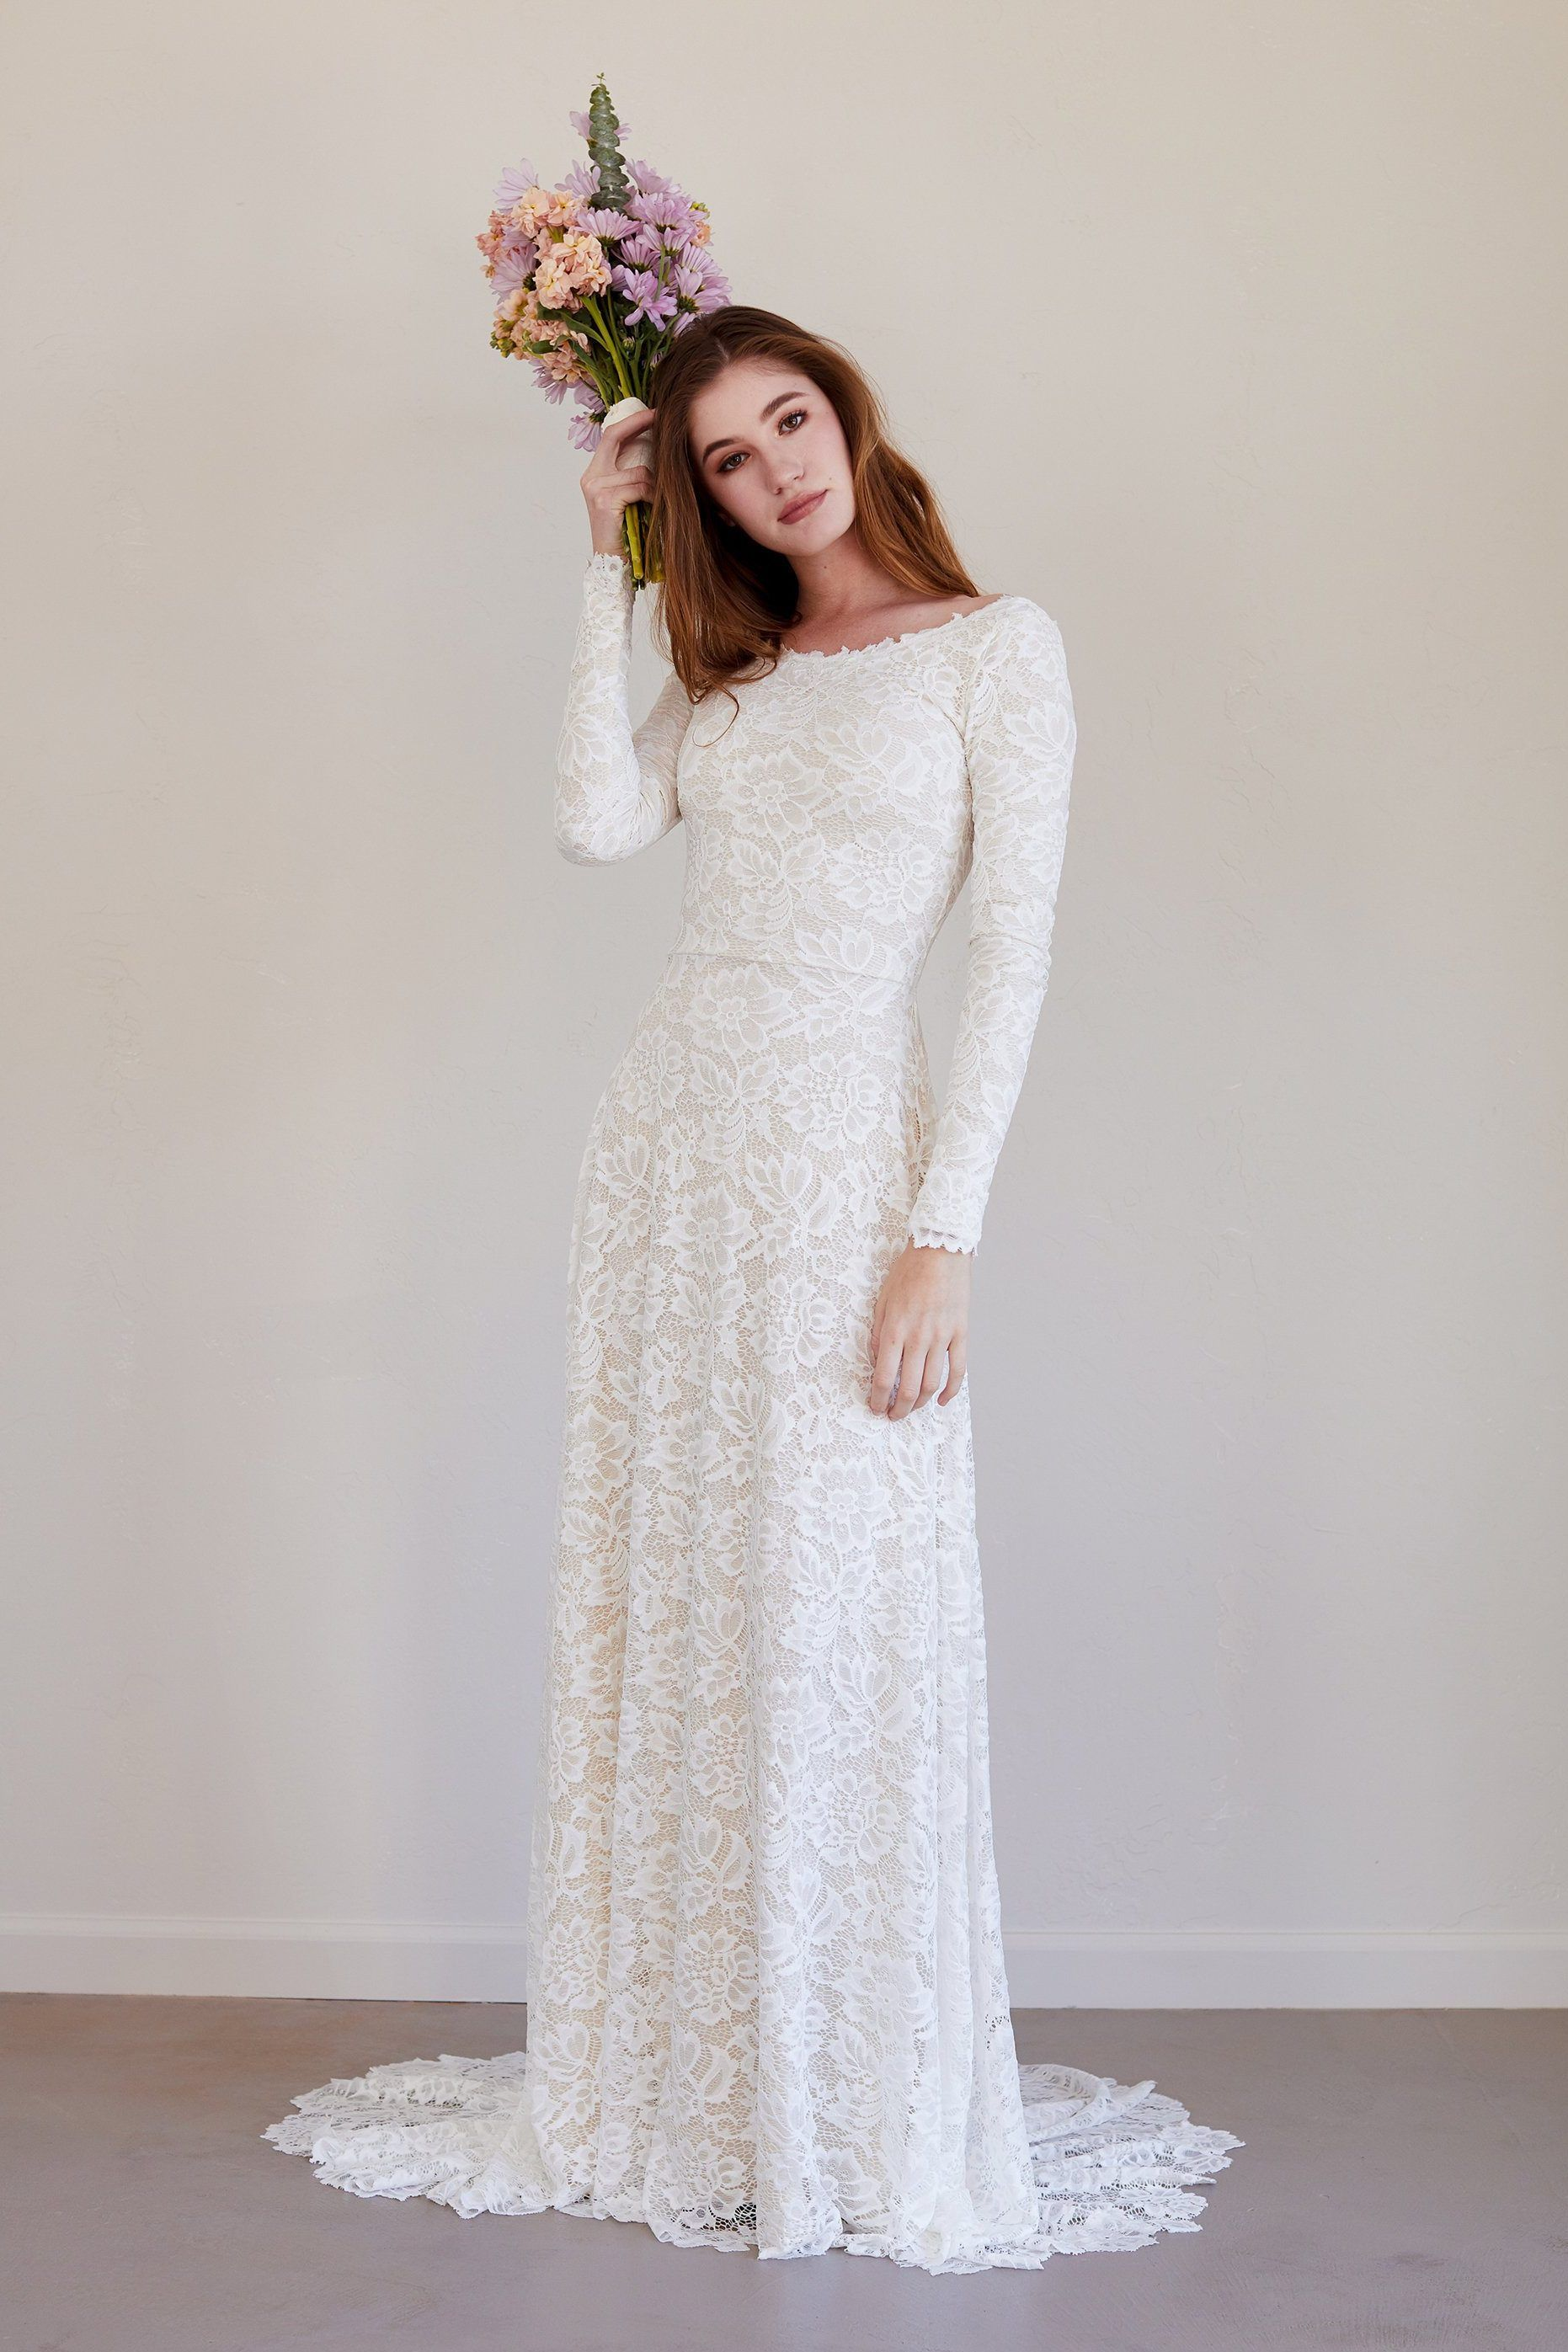 Long Sleeve Lace Wedding Dress Wedding Dresses Lace Weddings